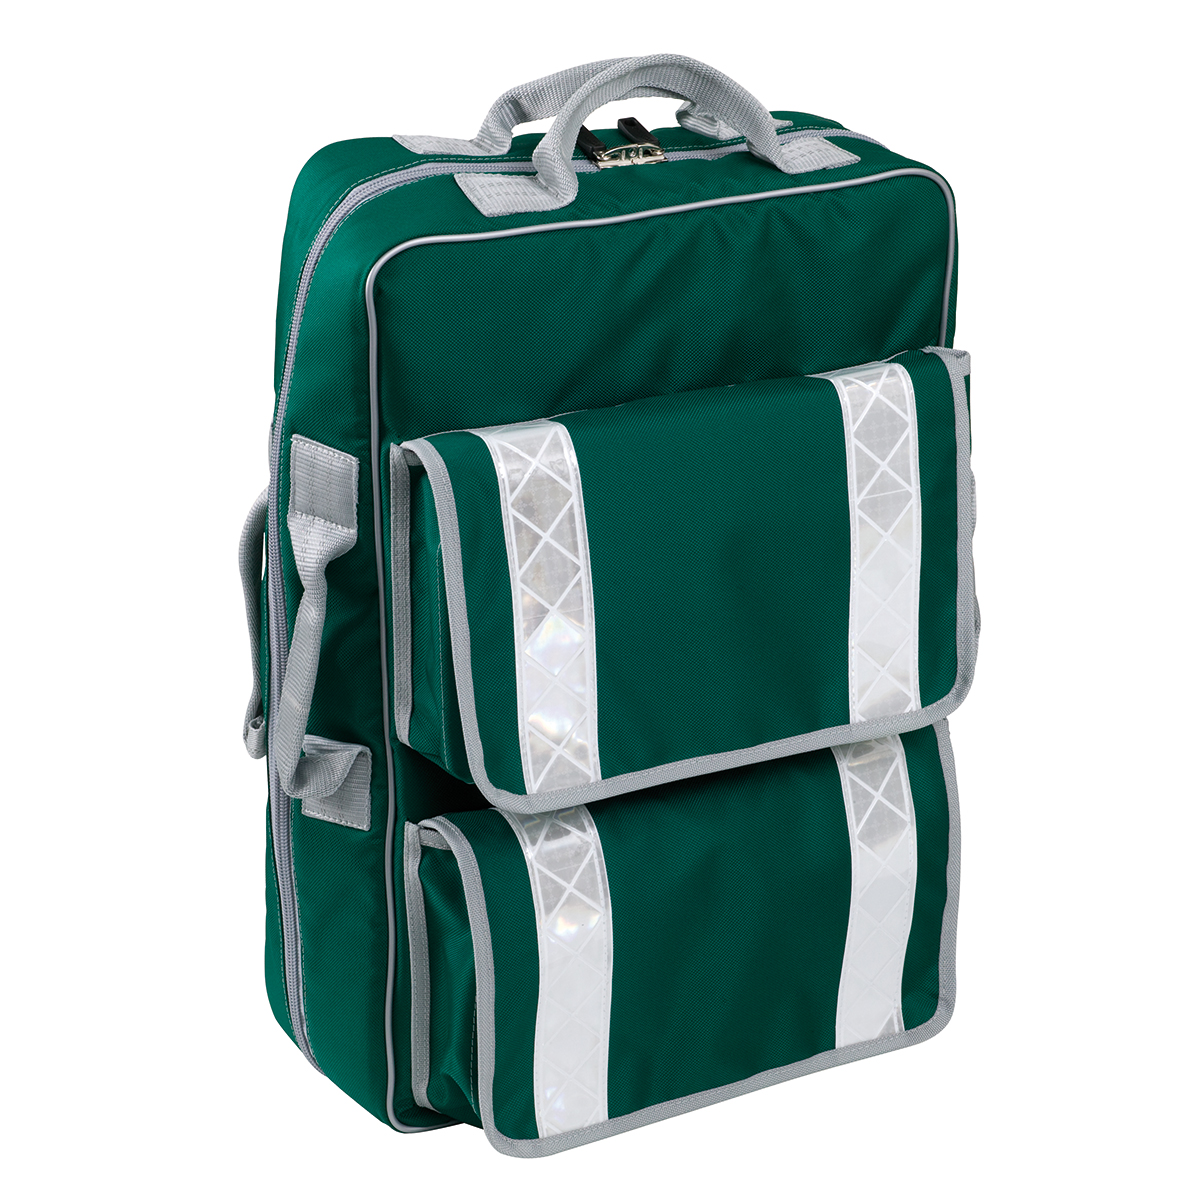 Super Backpack for First Aid Supplies